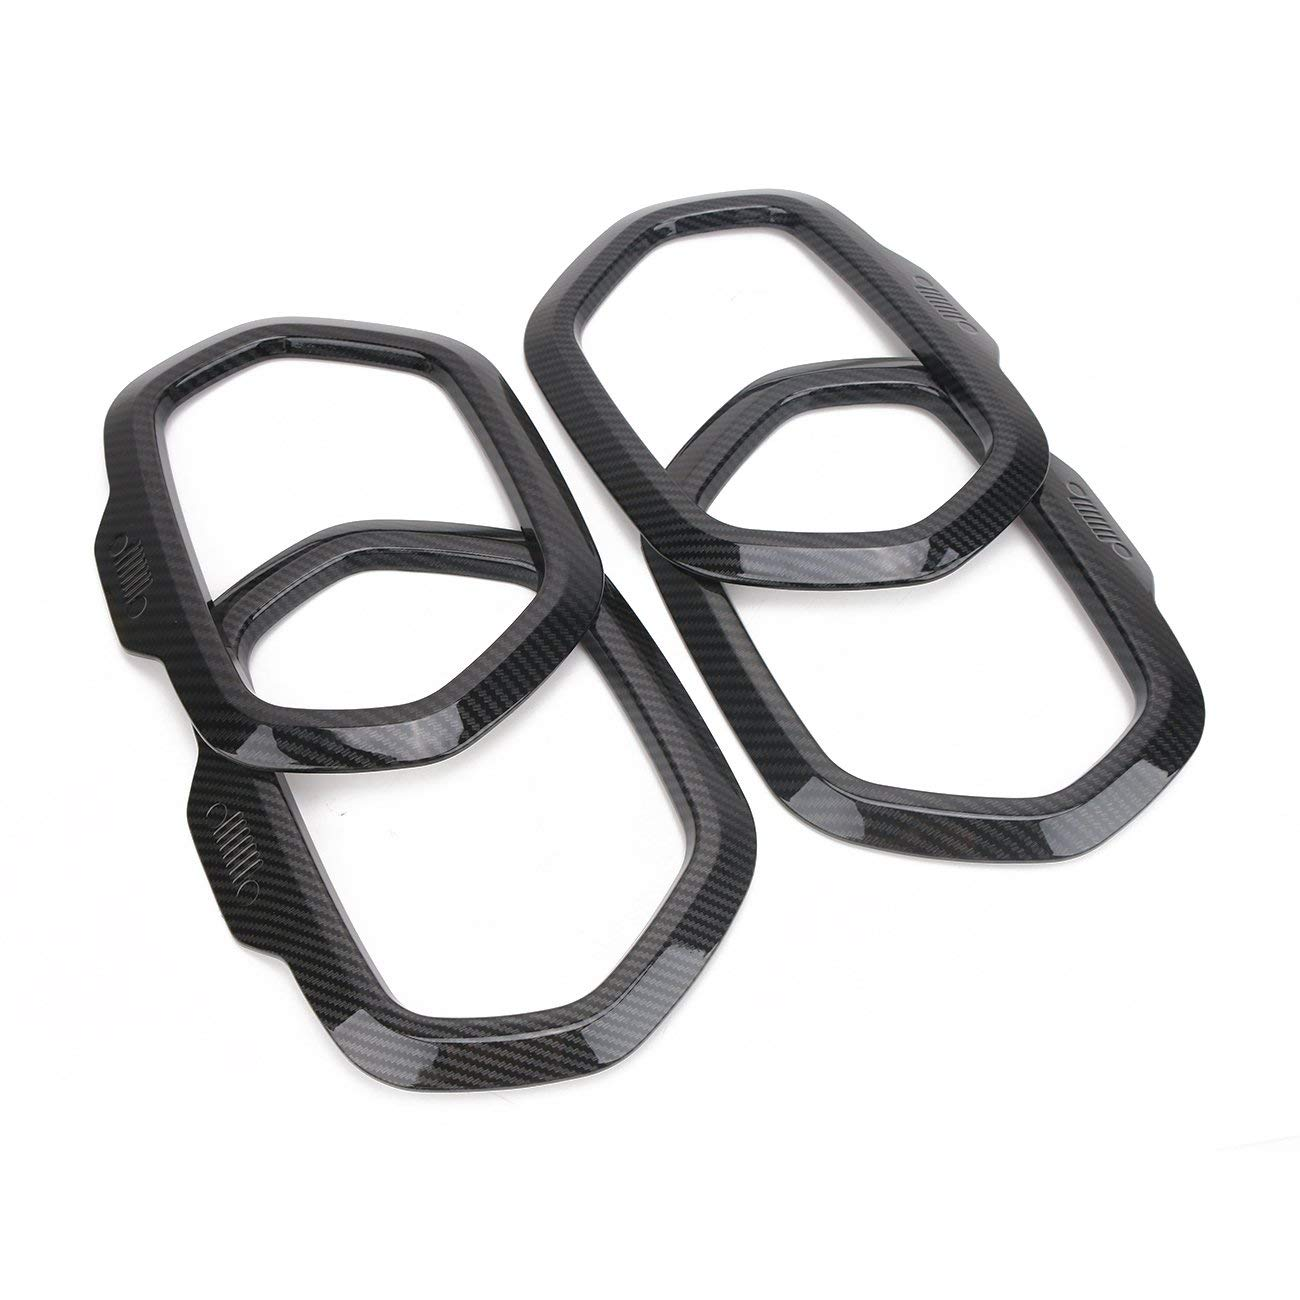 Door Speaker Horn Frame Covers Trims For Jeep Renegade 2015-2017 - Carbon Black LYNOON